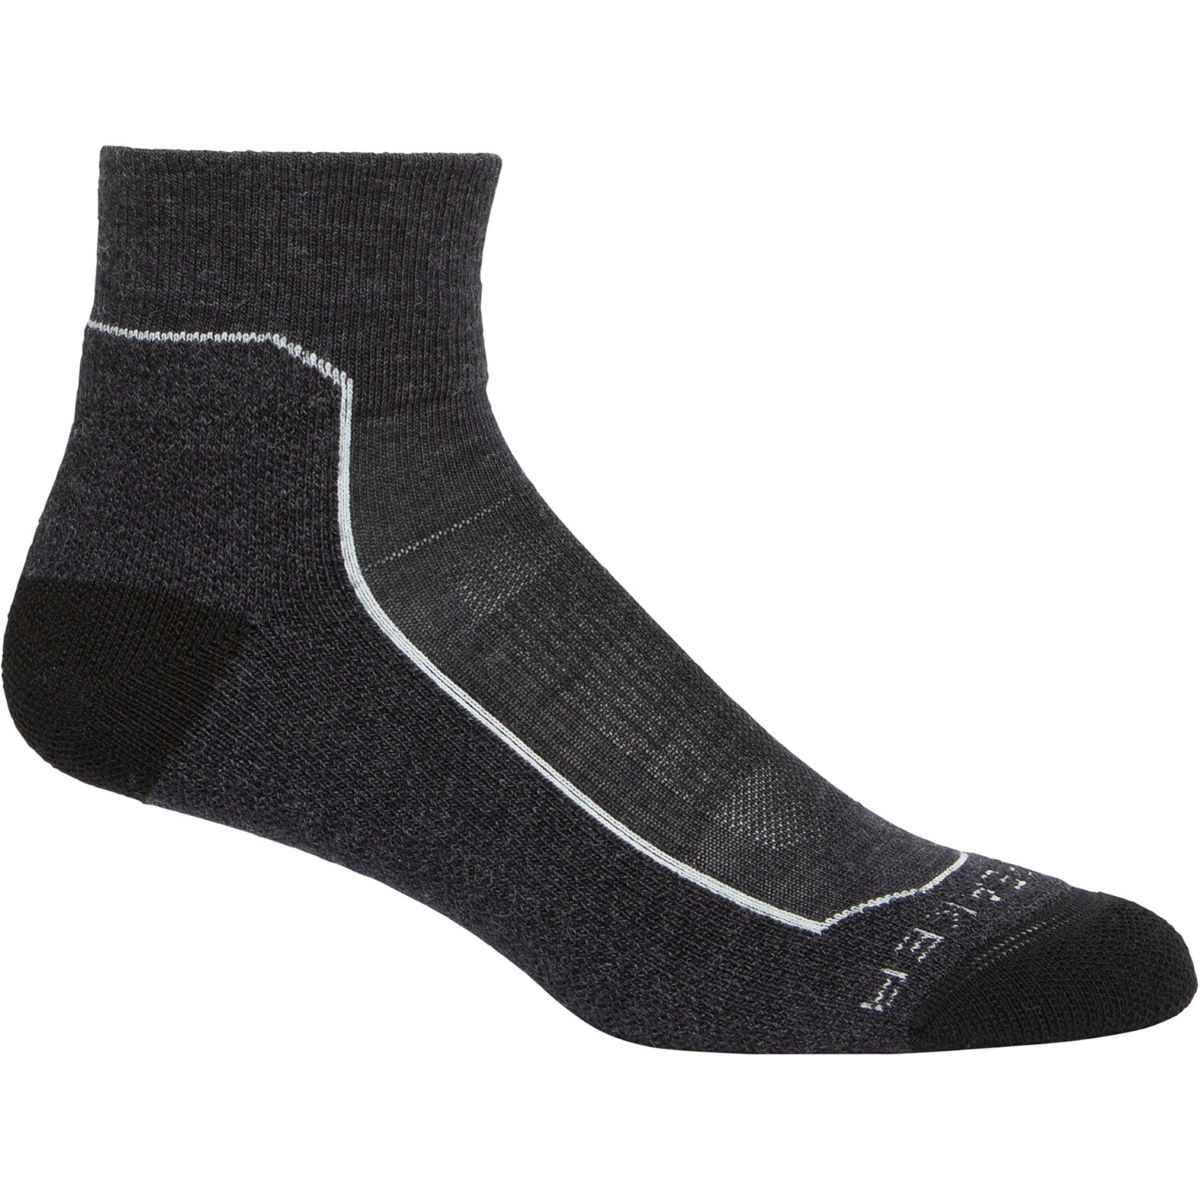 Icebreaker Icebreaker Hike+ Mini Light Cushion Socks   Socks